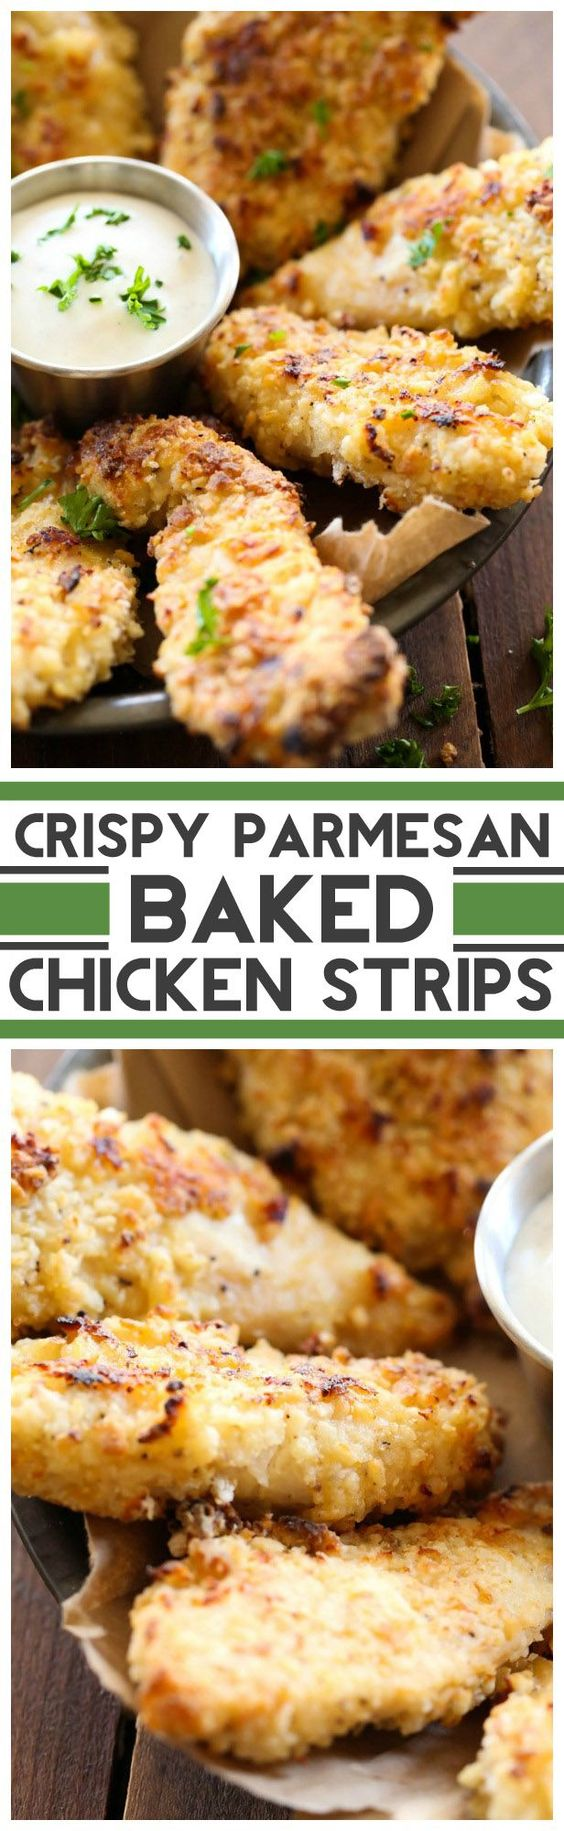 ... chicken strips chicken parmesan baked chicken strips baked chicken